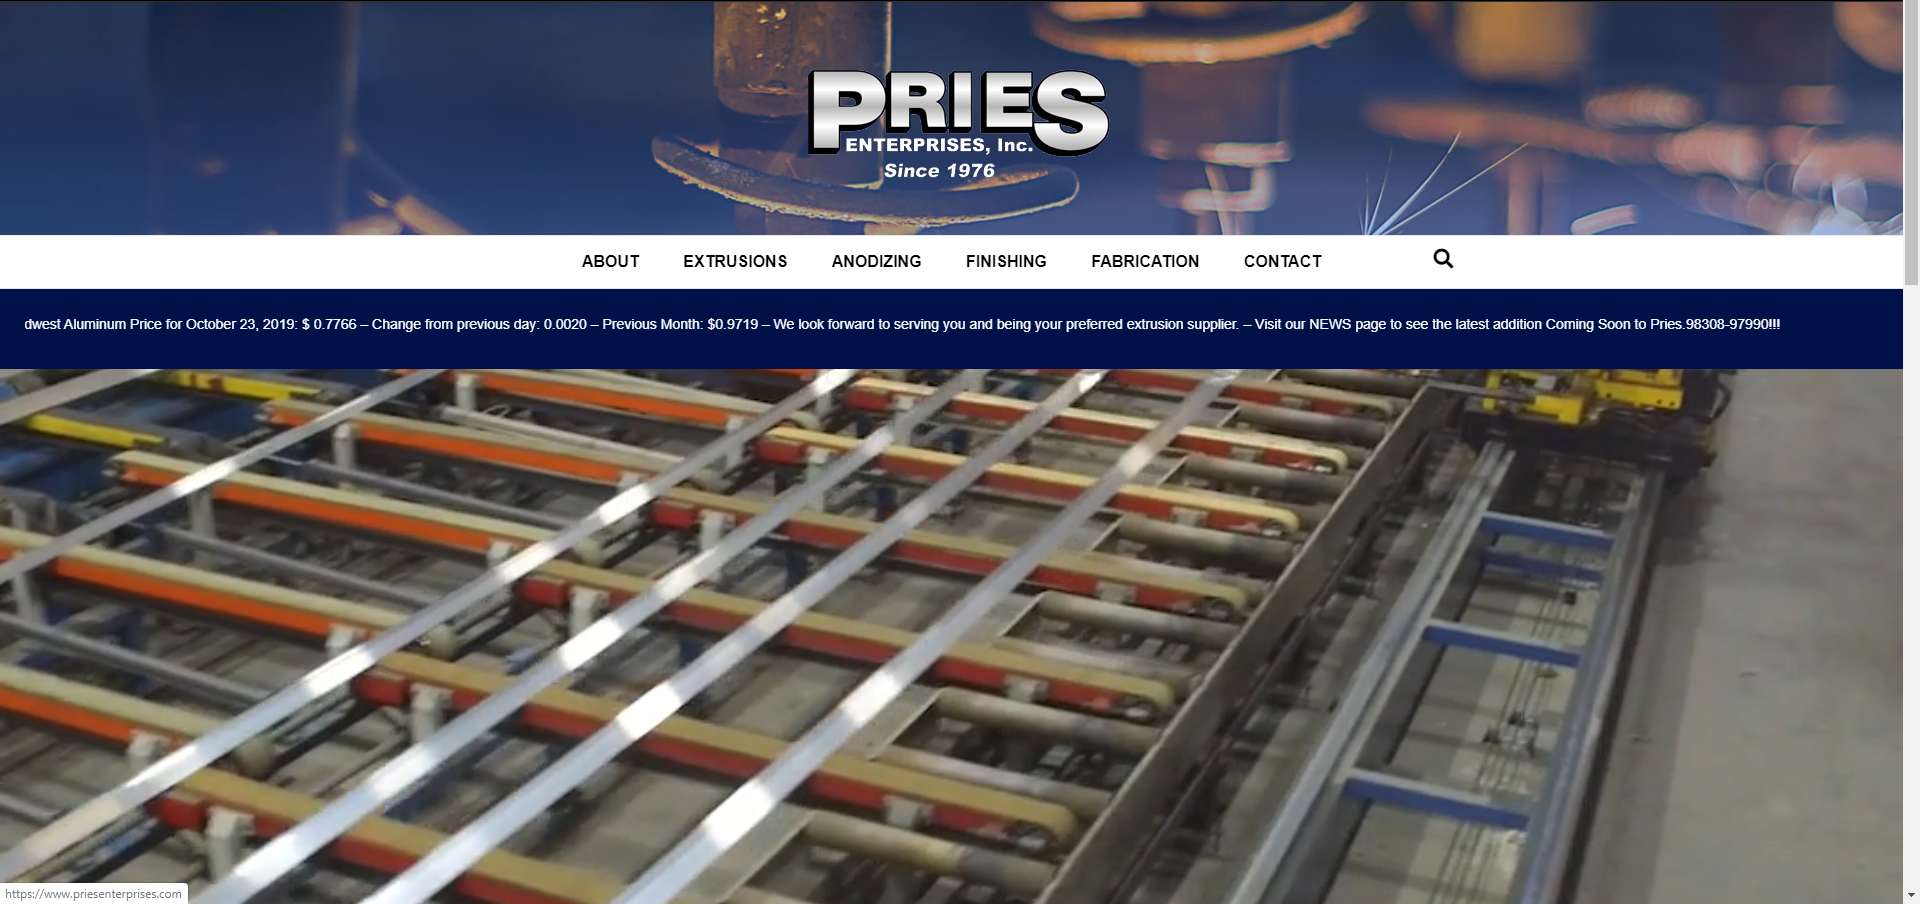 Pries Enterprises, Inc. - Website